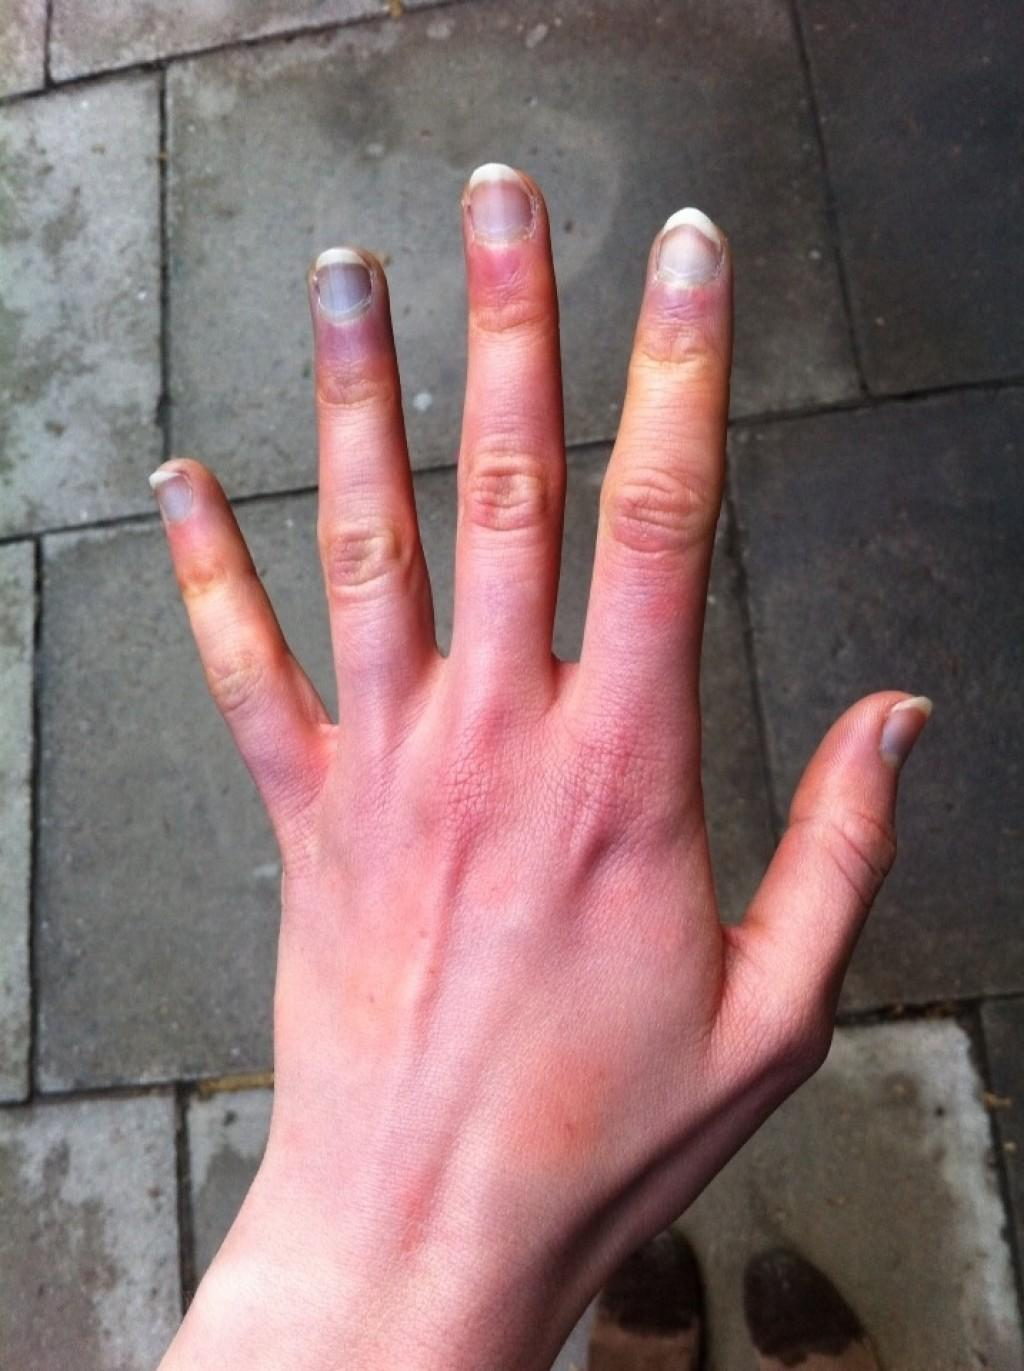 Right Ring Finger Pain When It Is Wet